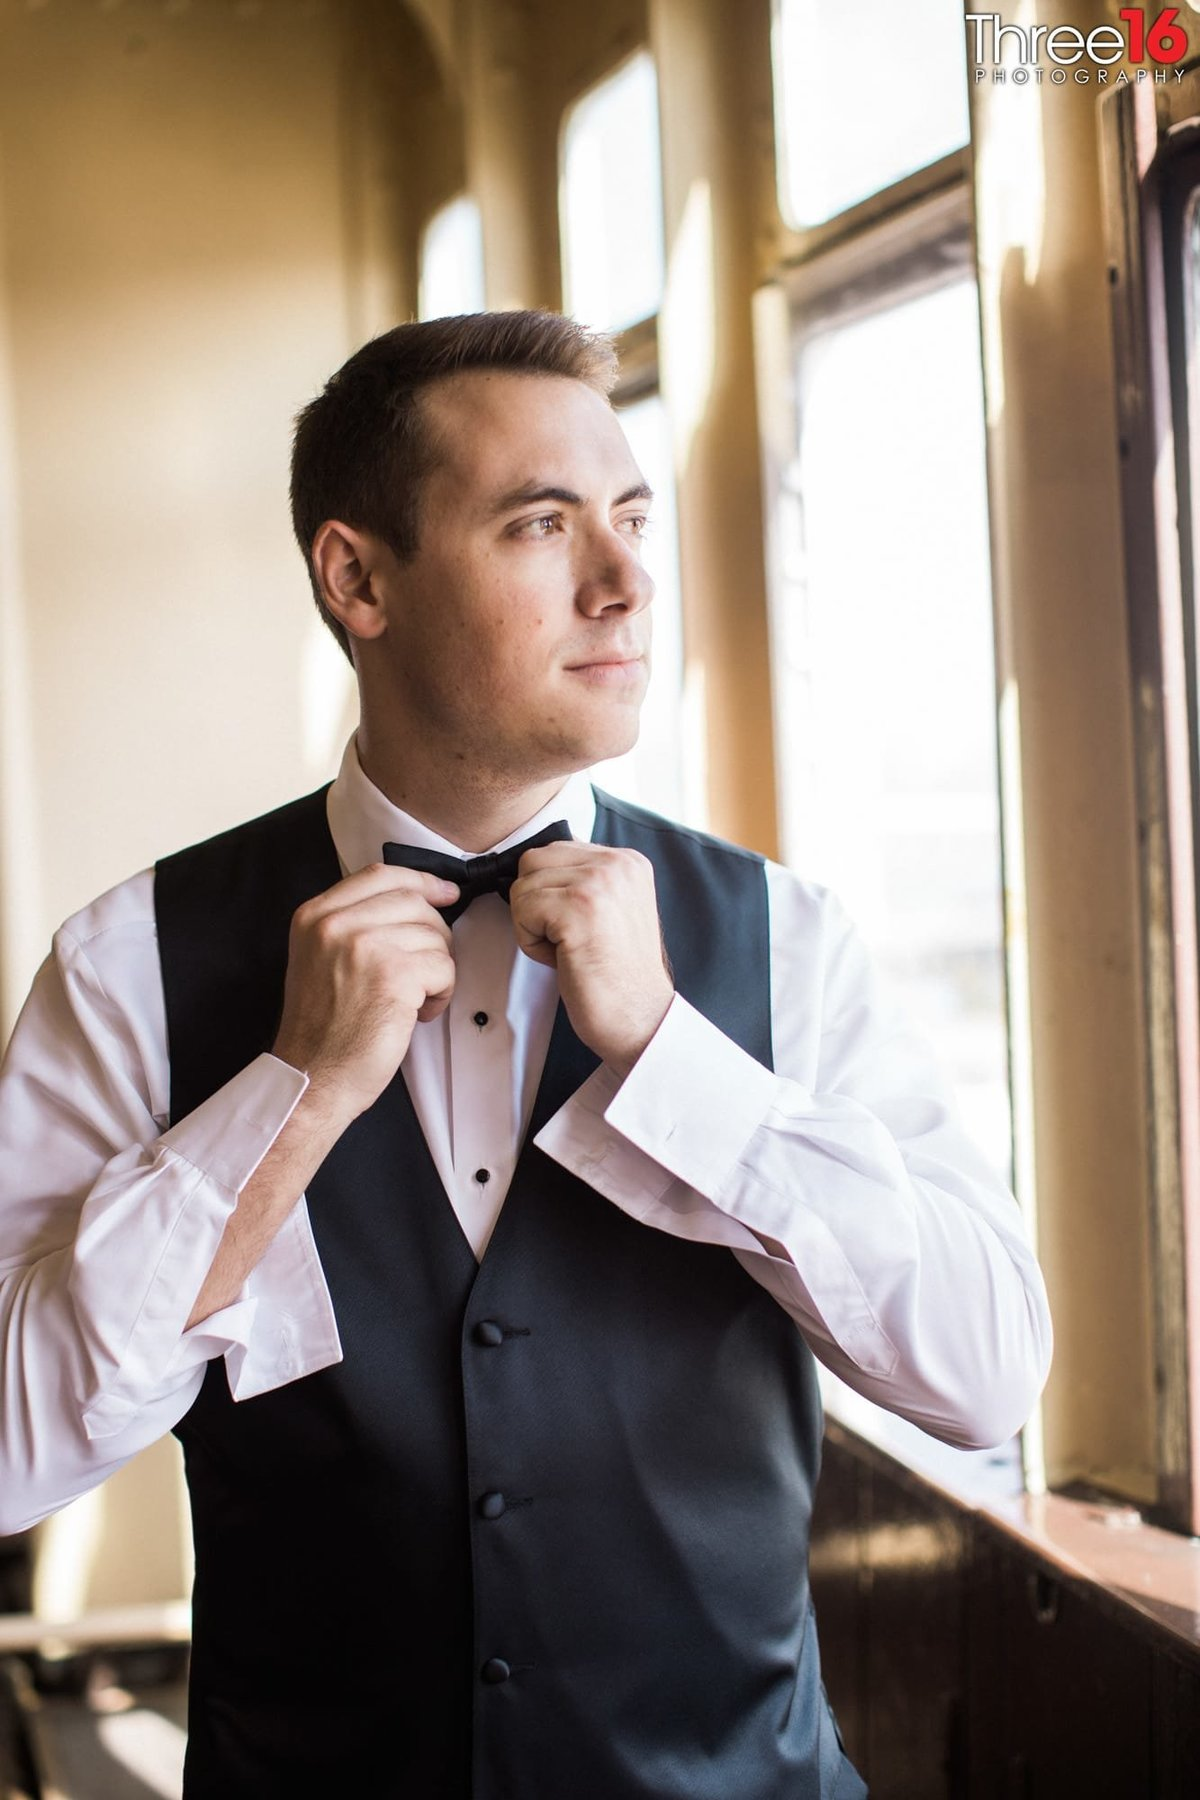 Groom straightening his bow tie before the ceremony